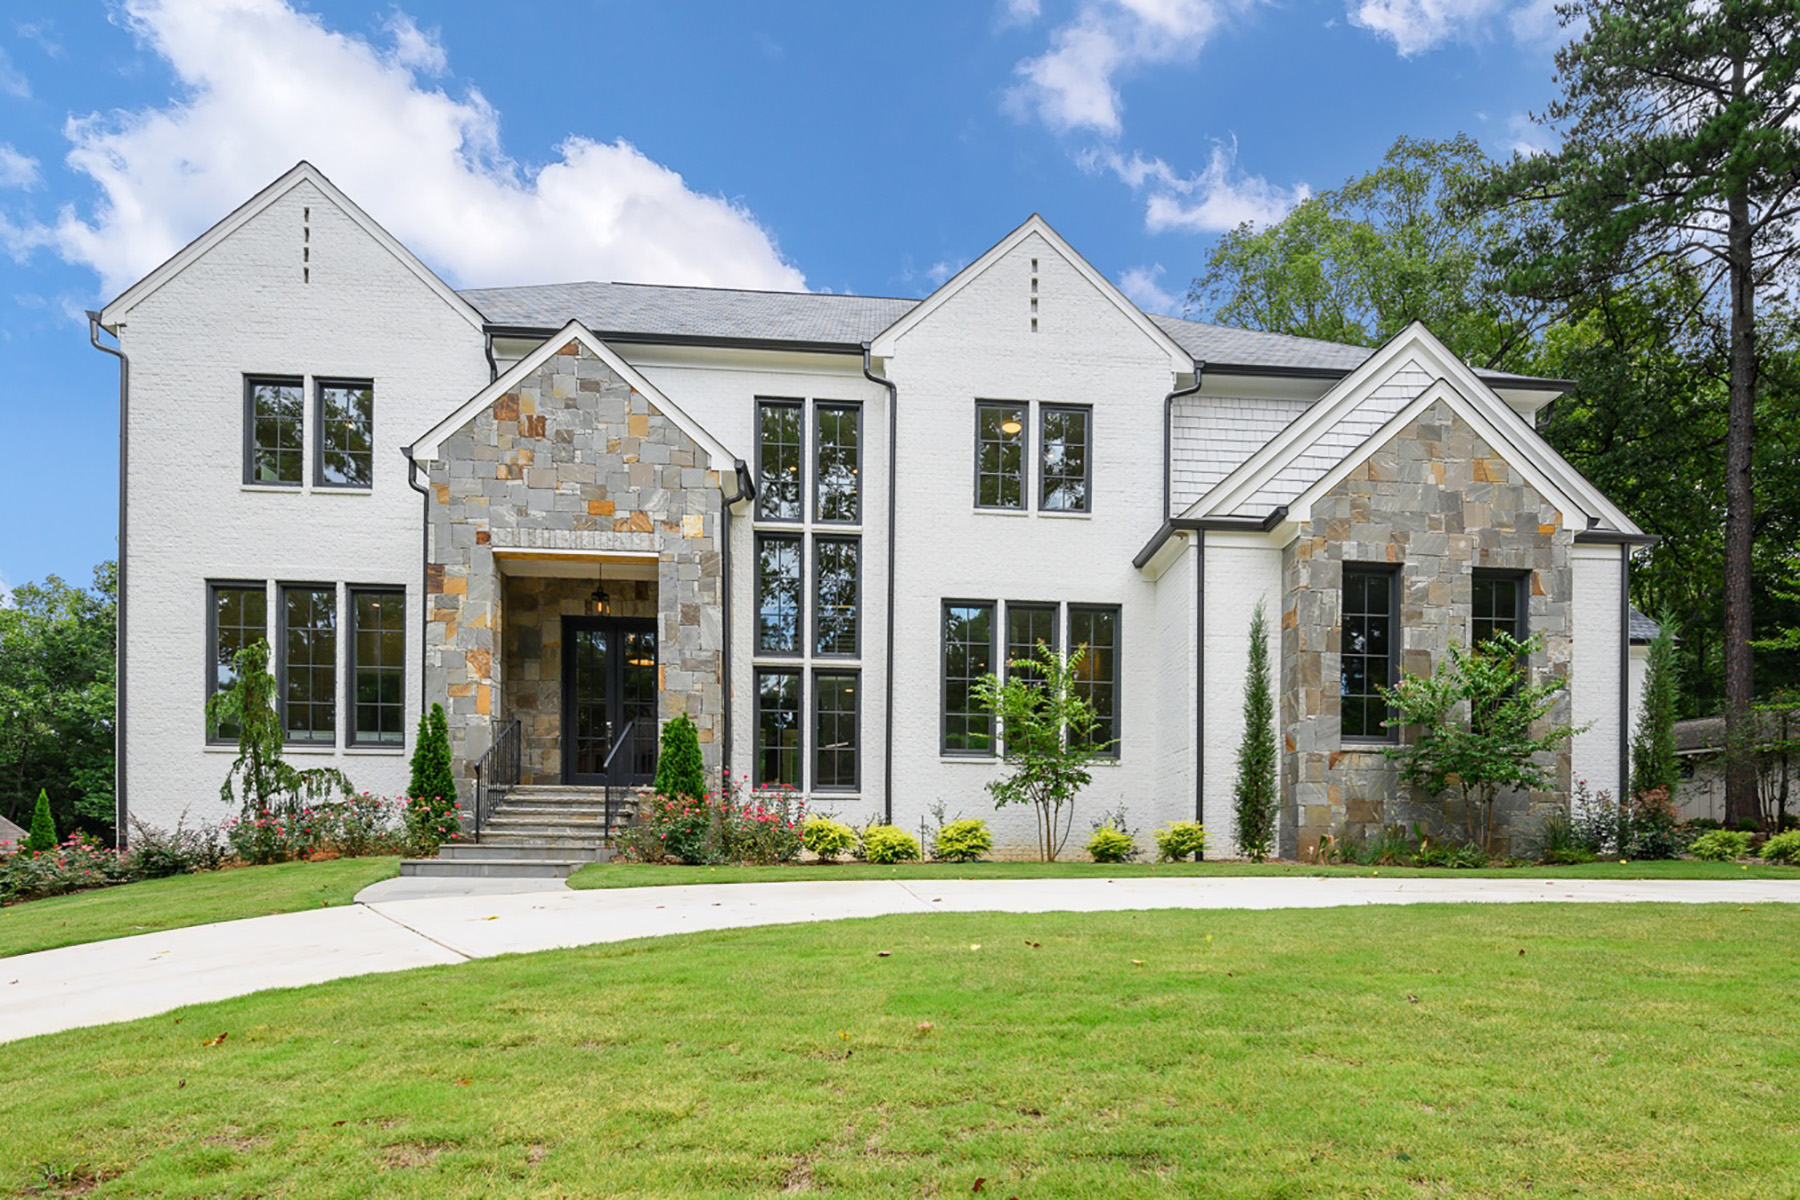 Single Family Homes for Active at Sophisticated Atlanta Country Club Elegance 510 Brook Hollow Circle SE Marietta, Georgia 30067 United States